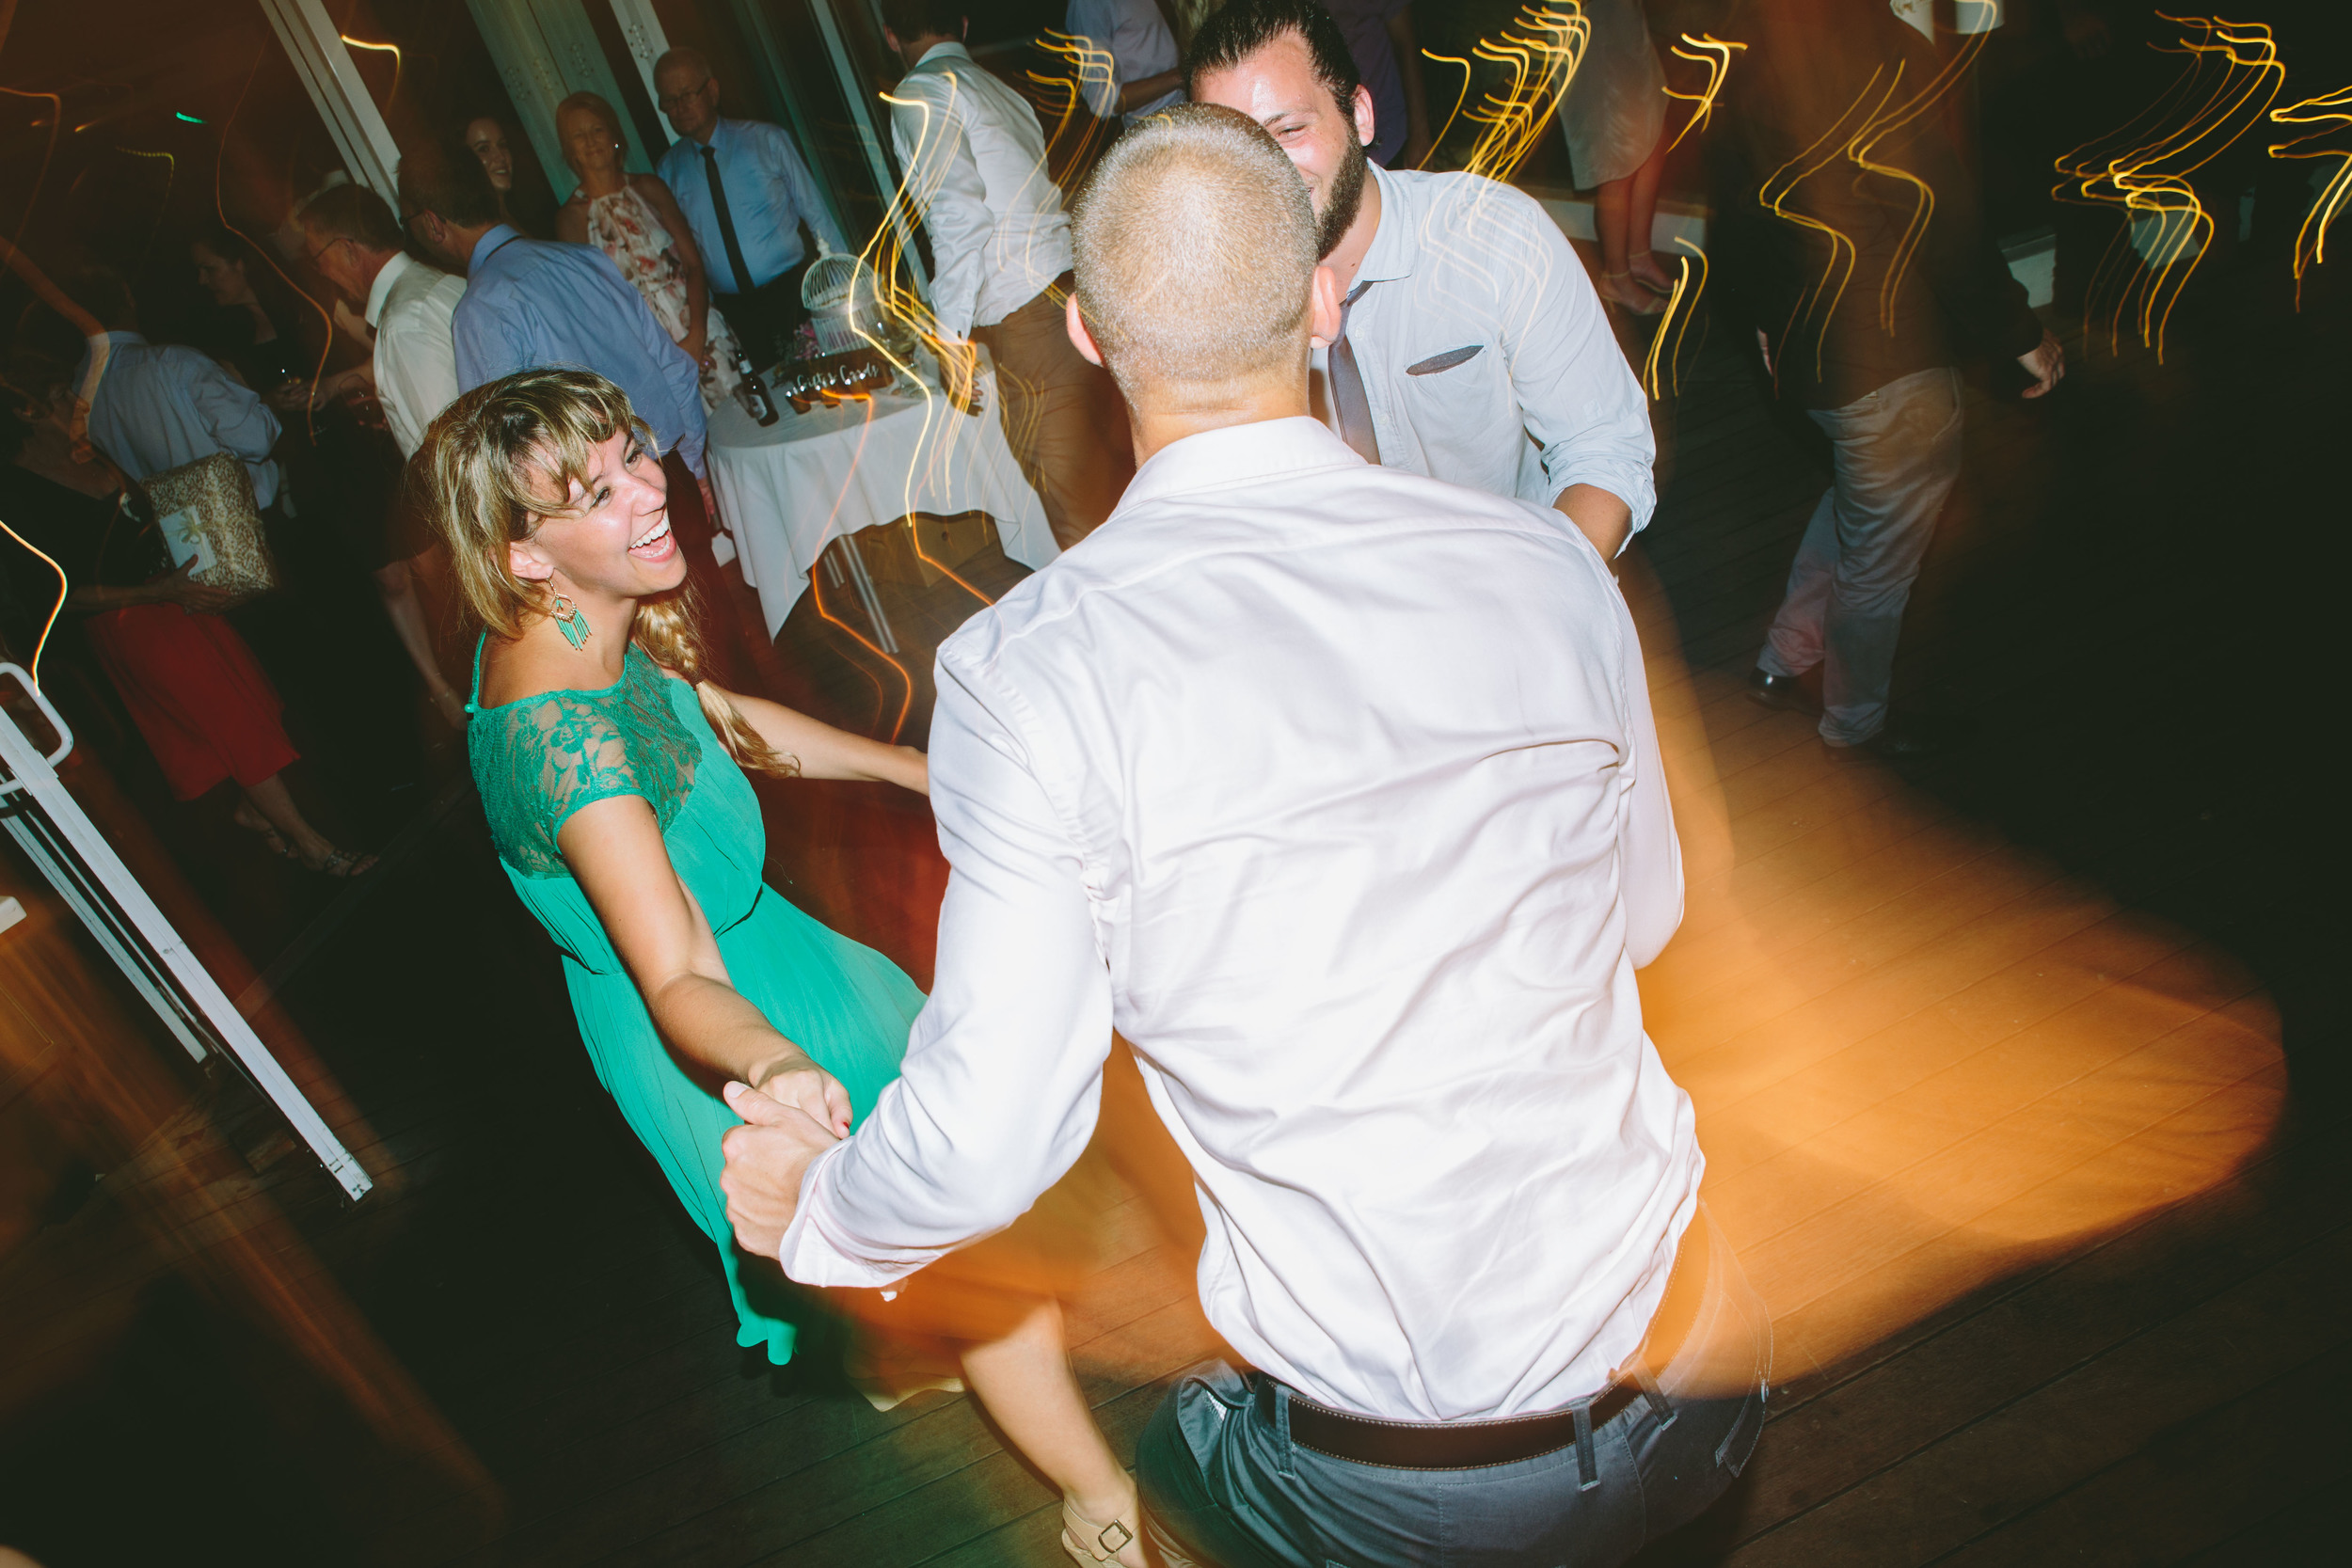 Courtney + Chris_Dancefloor-9020.jpg